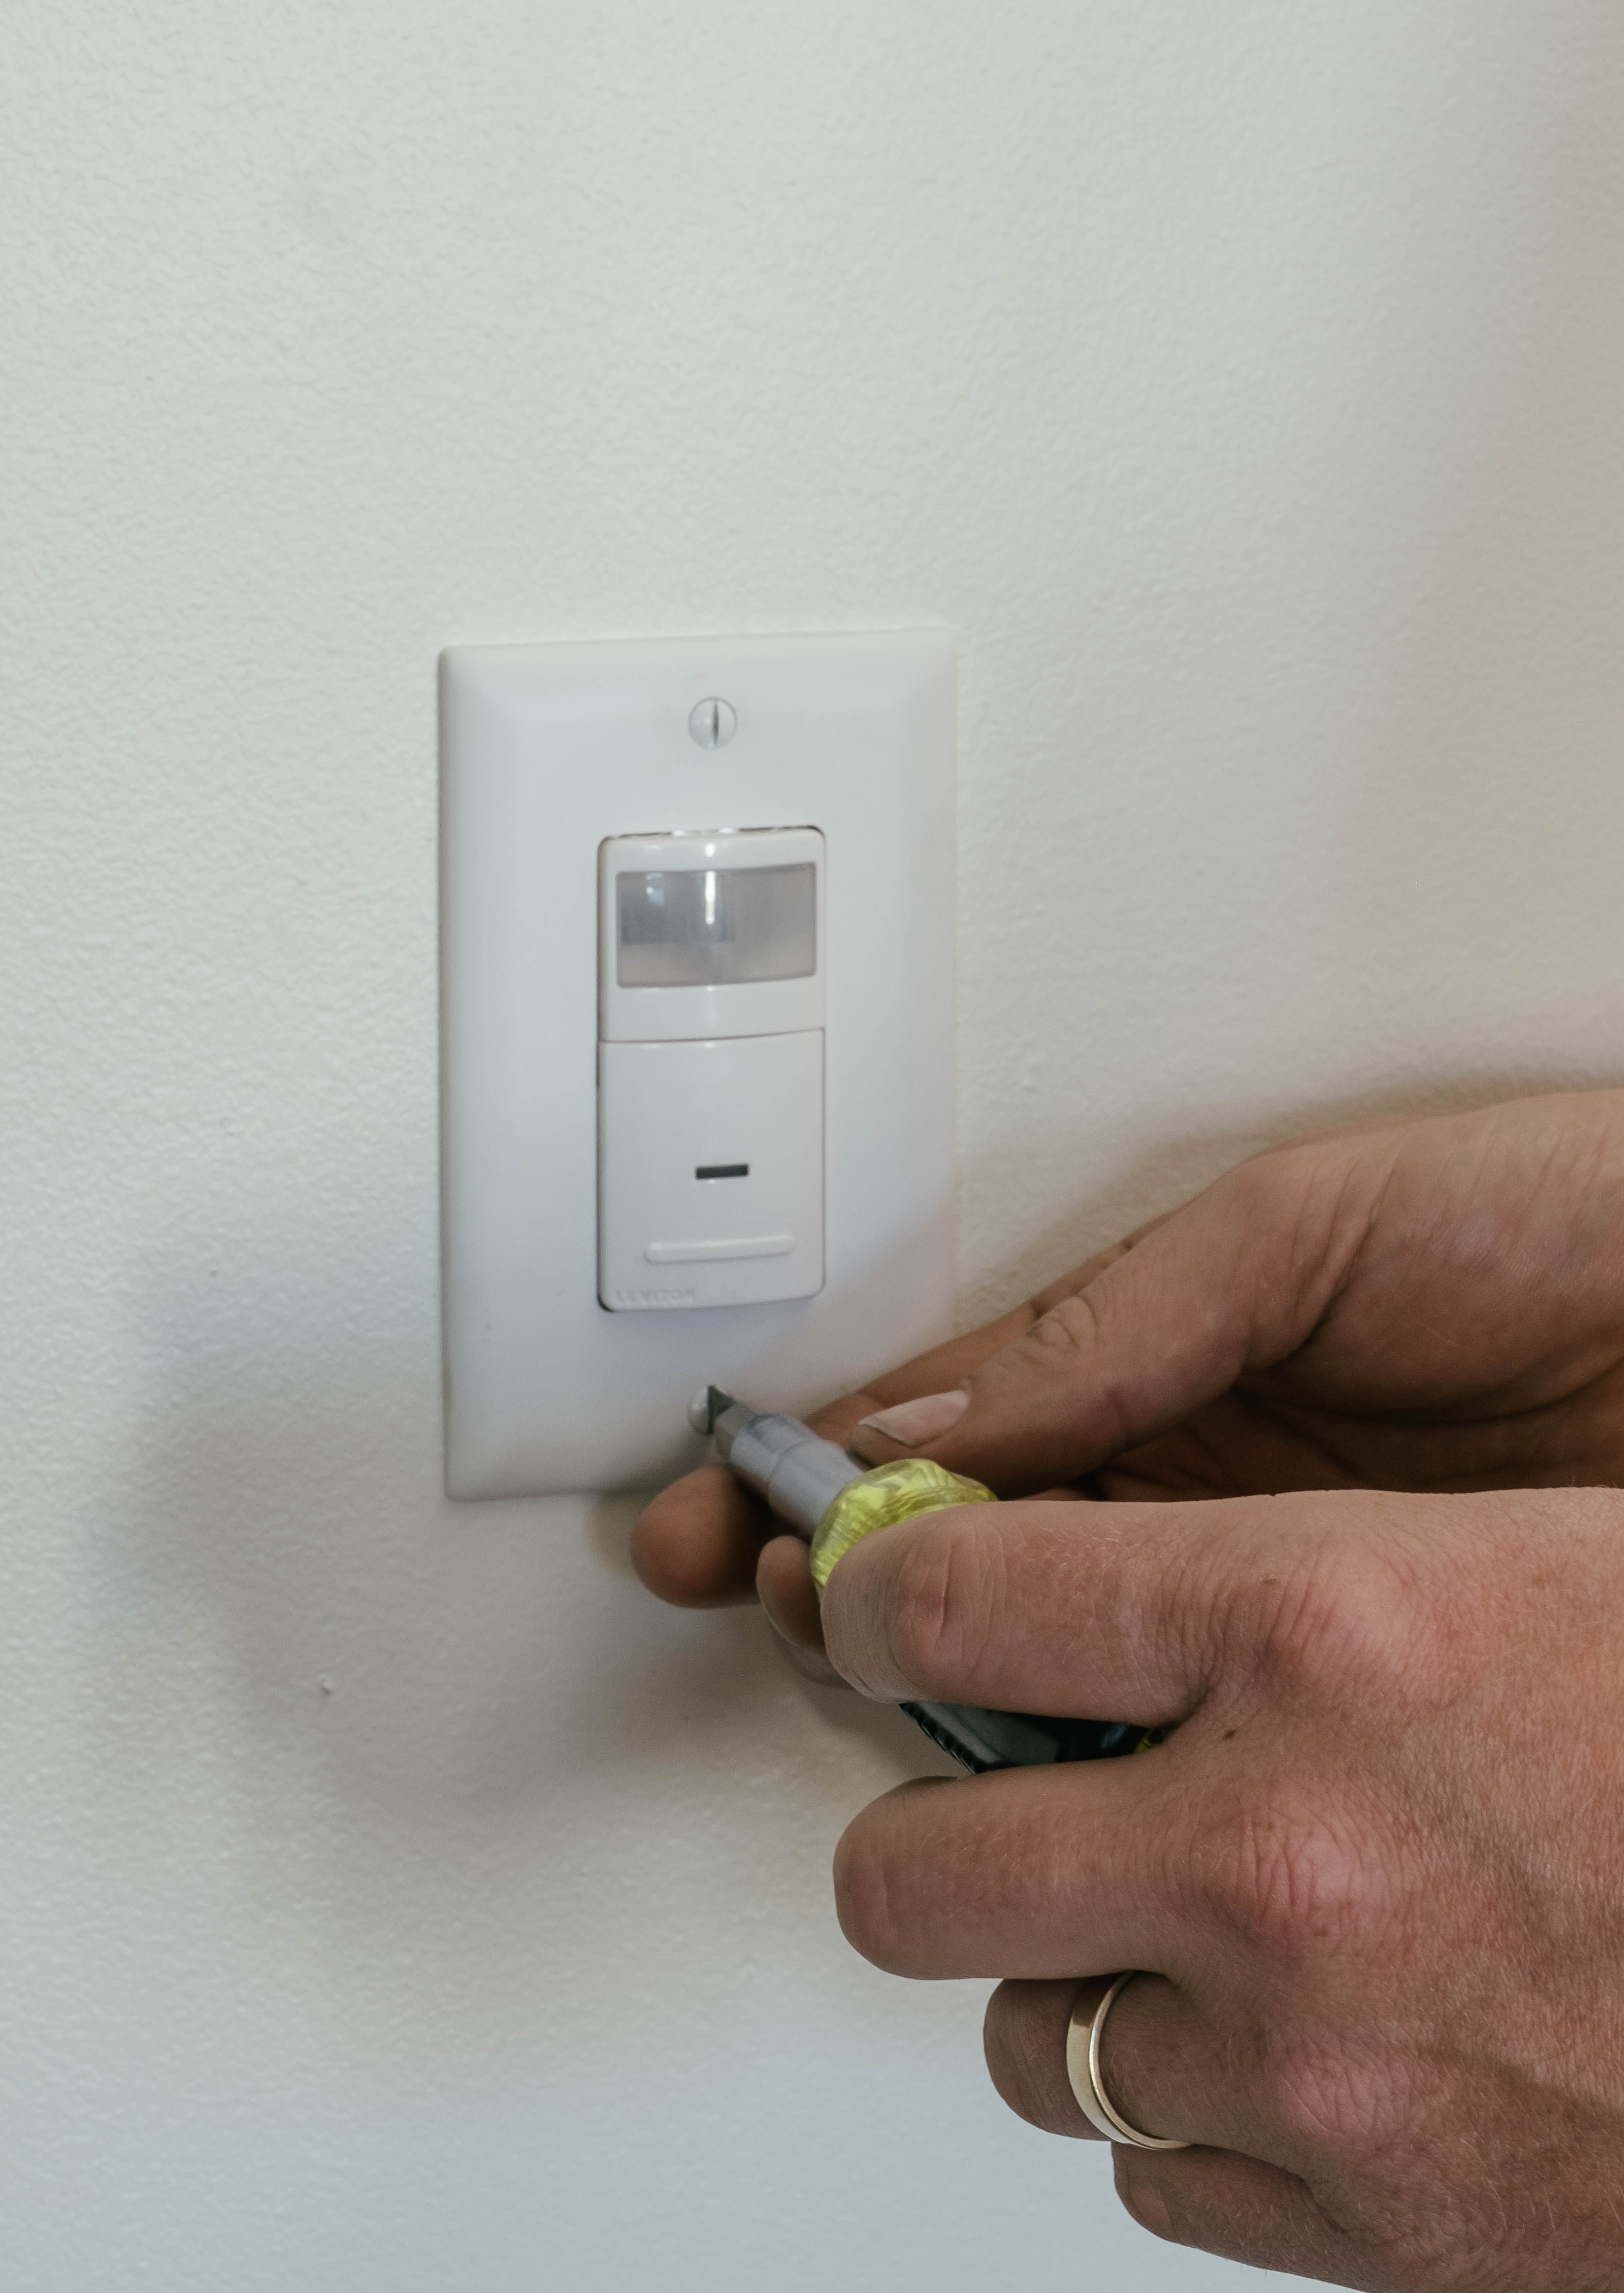 Installing an occupancy sensor for use in a Smart Lighting system